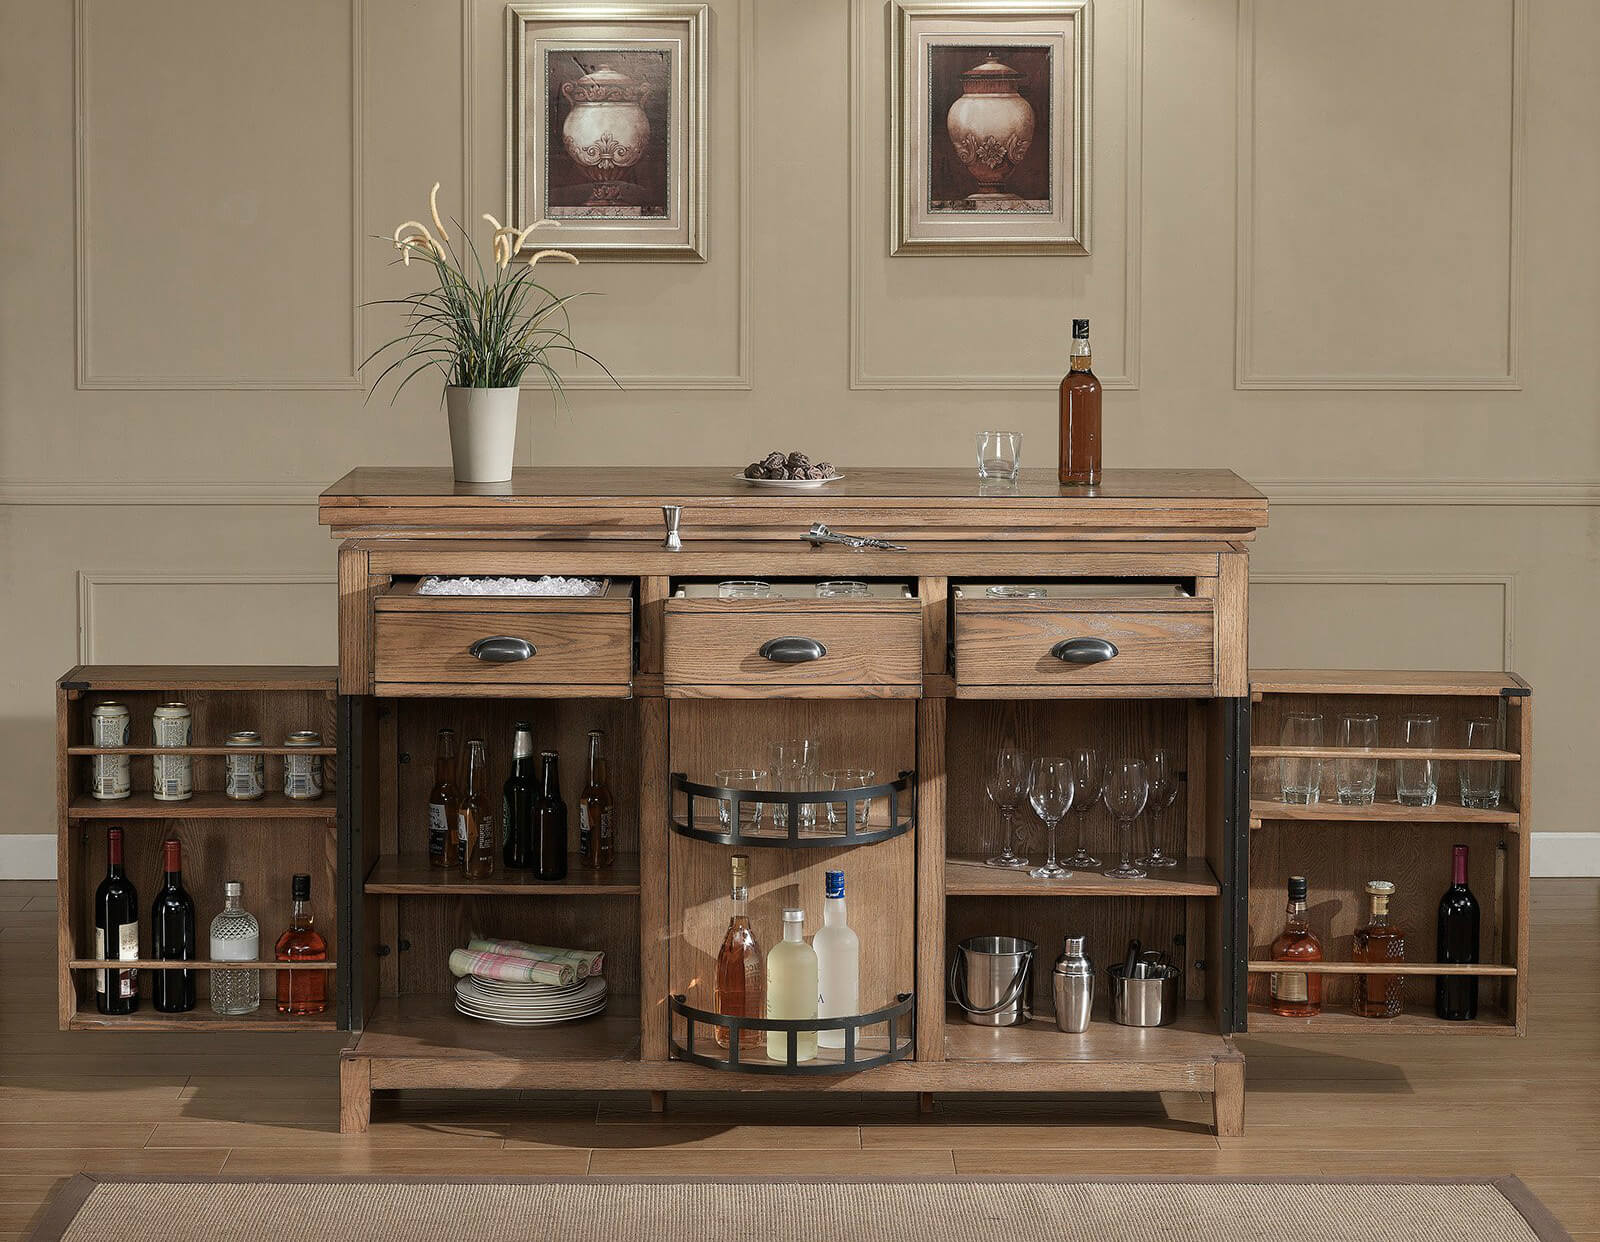 N As You Can See The Amount Of Storage In This Rustic Home Bar Cabinet Unit